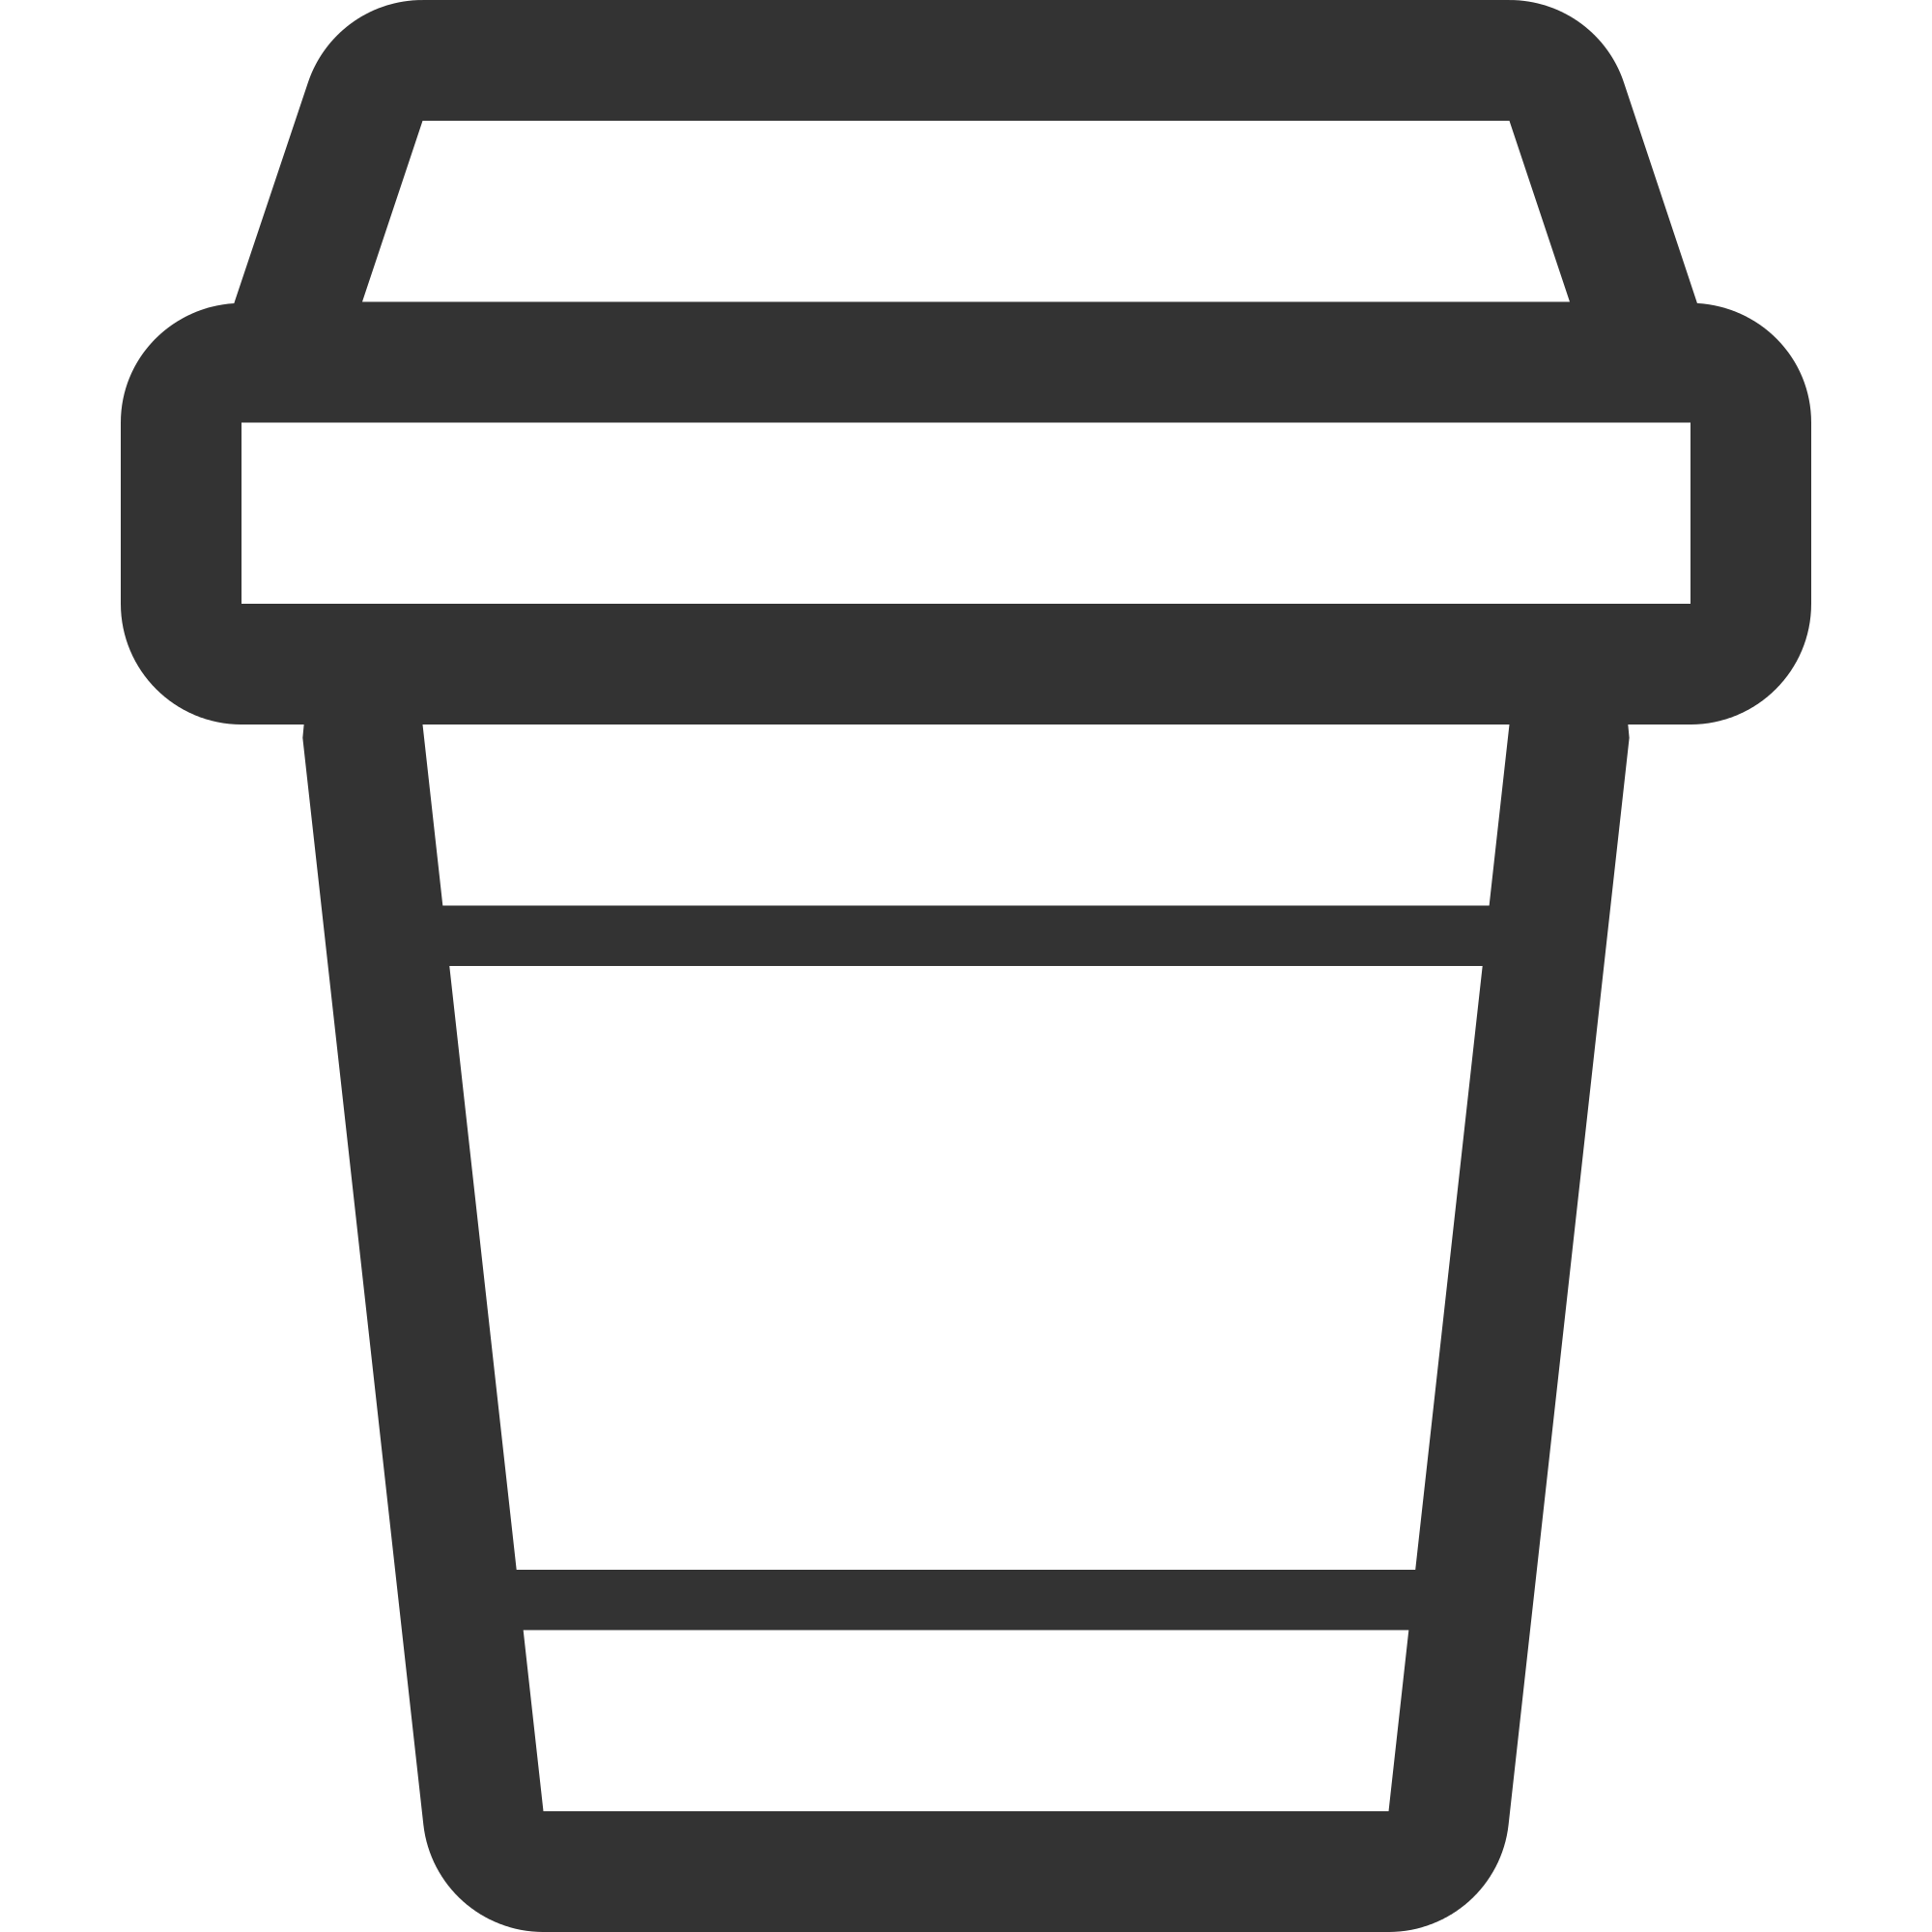 Coffee svg #5, Download drawings